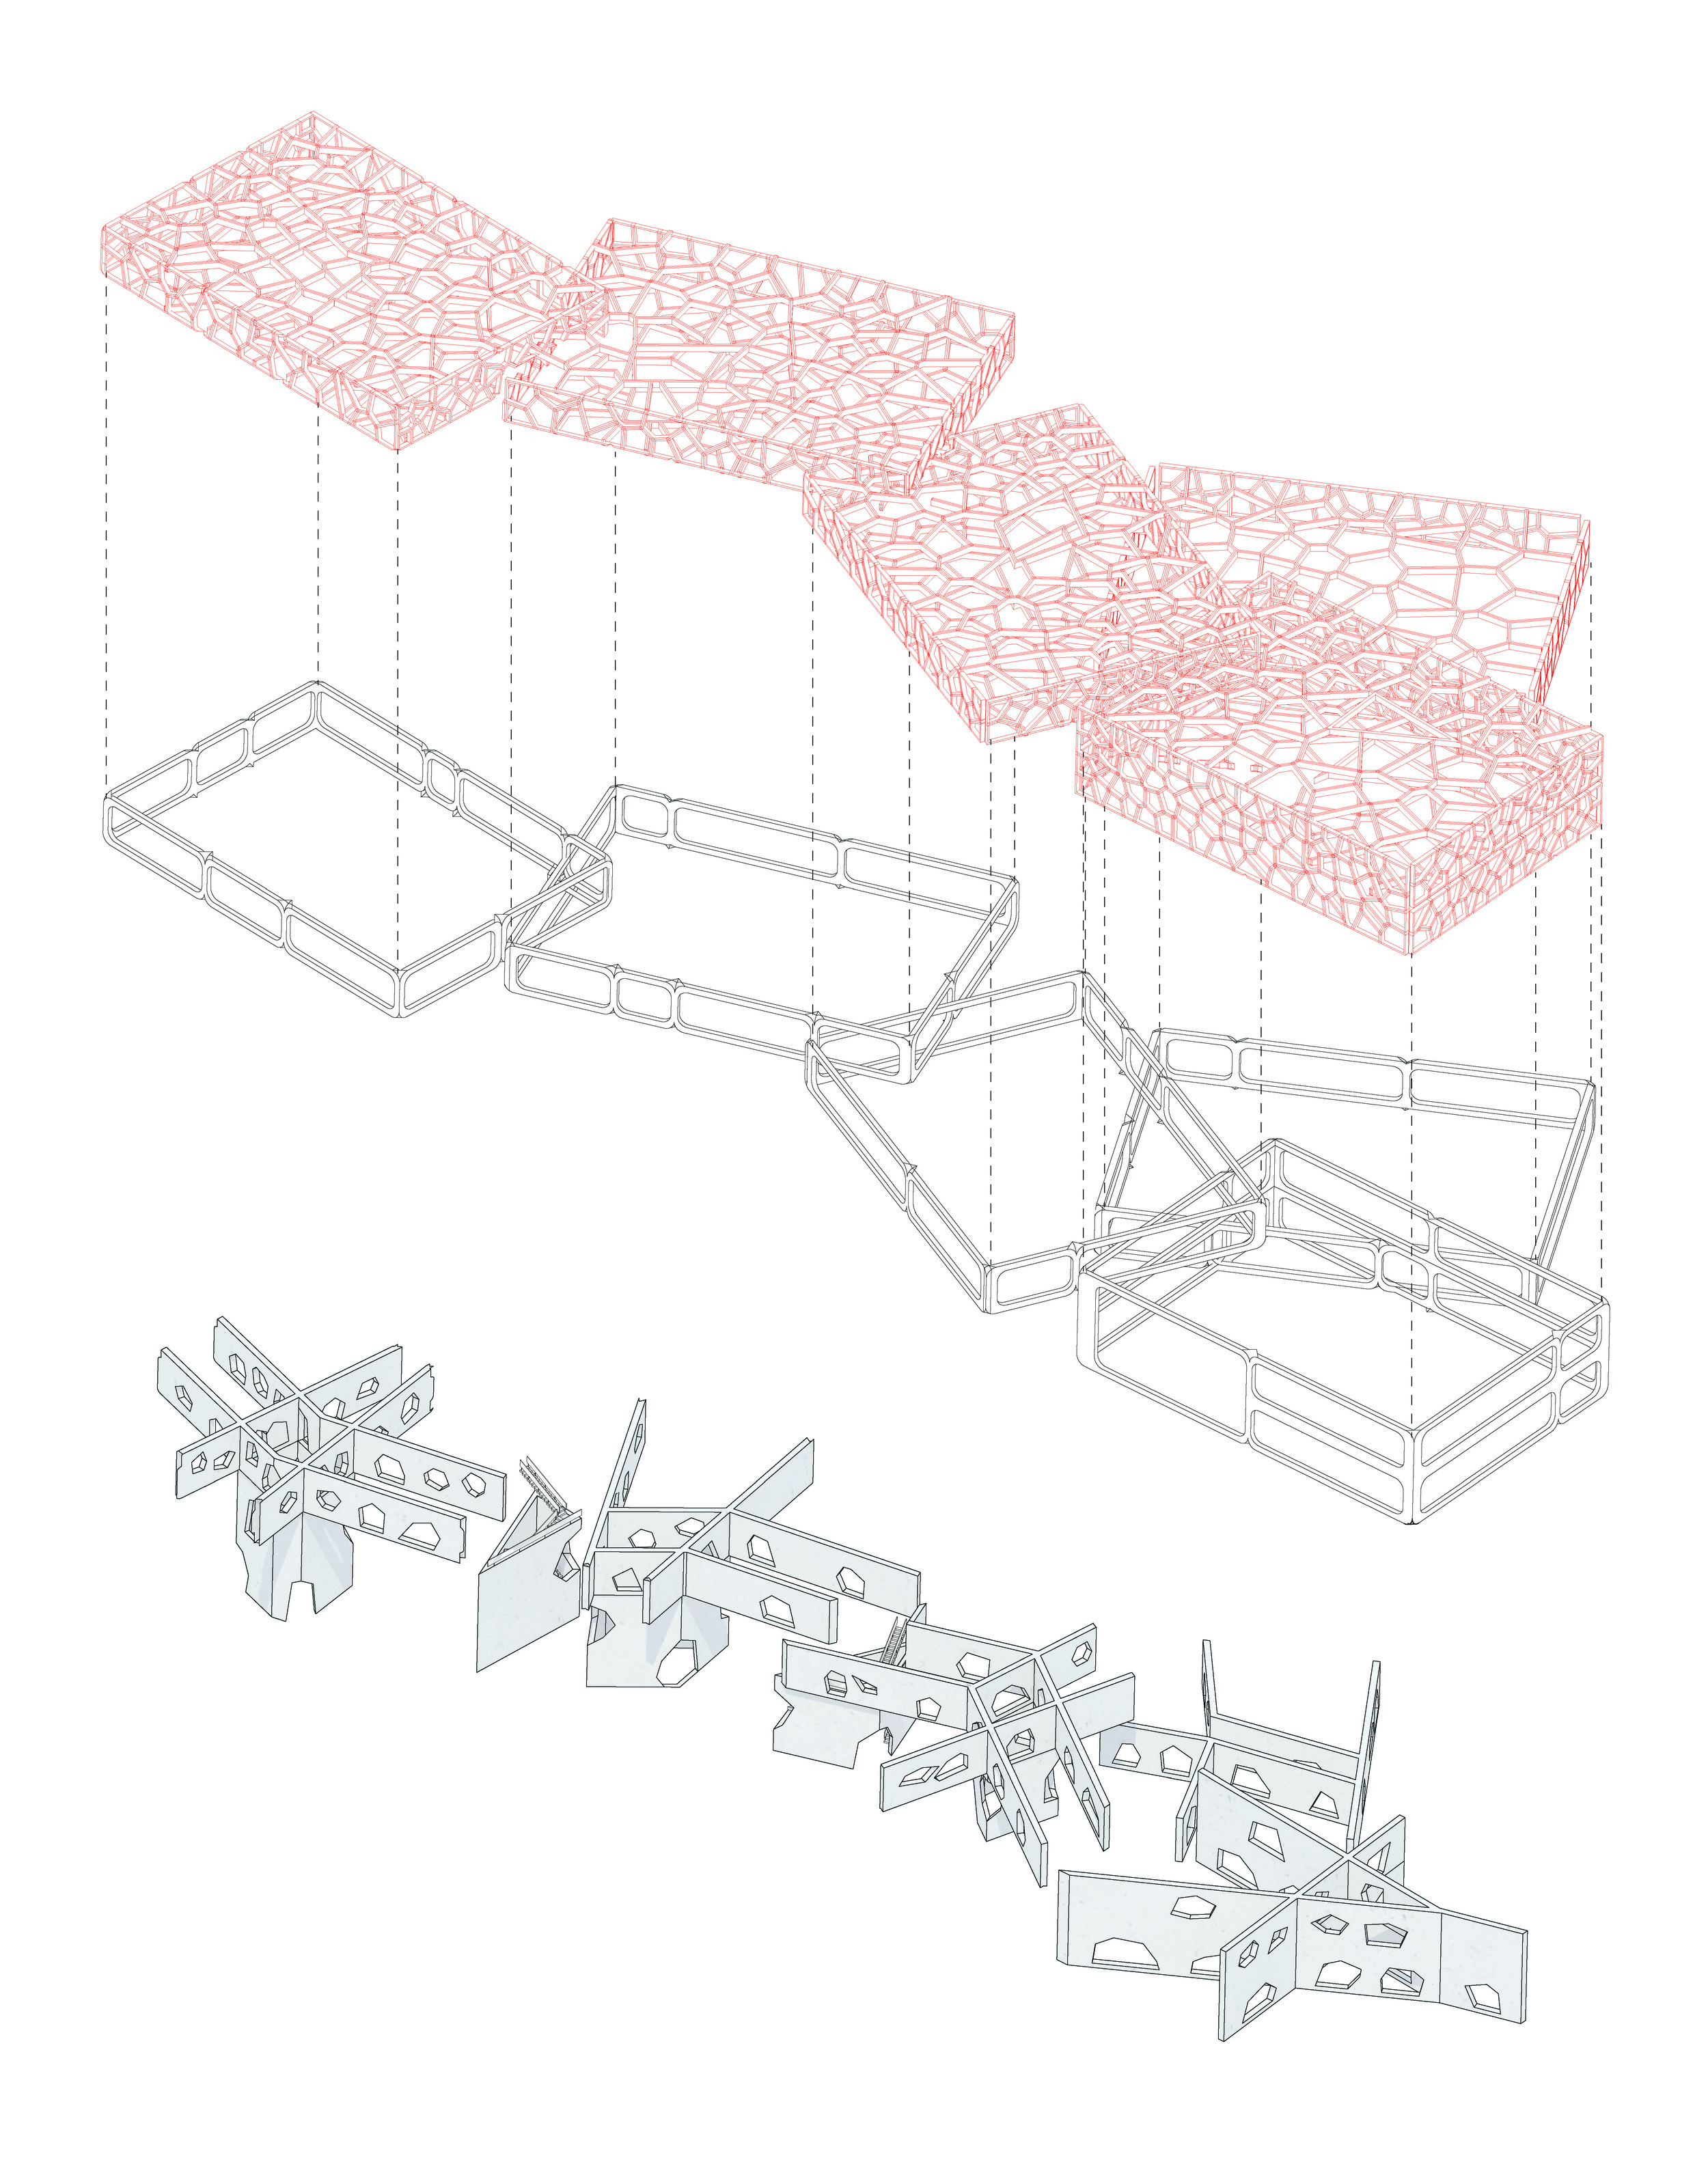 From Top: Cellular Steel Structure, Frame for Openings, Concrete Cores